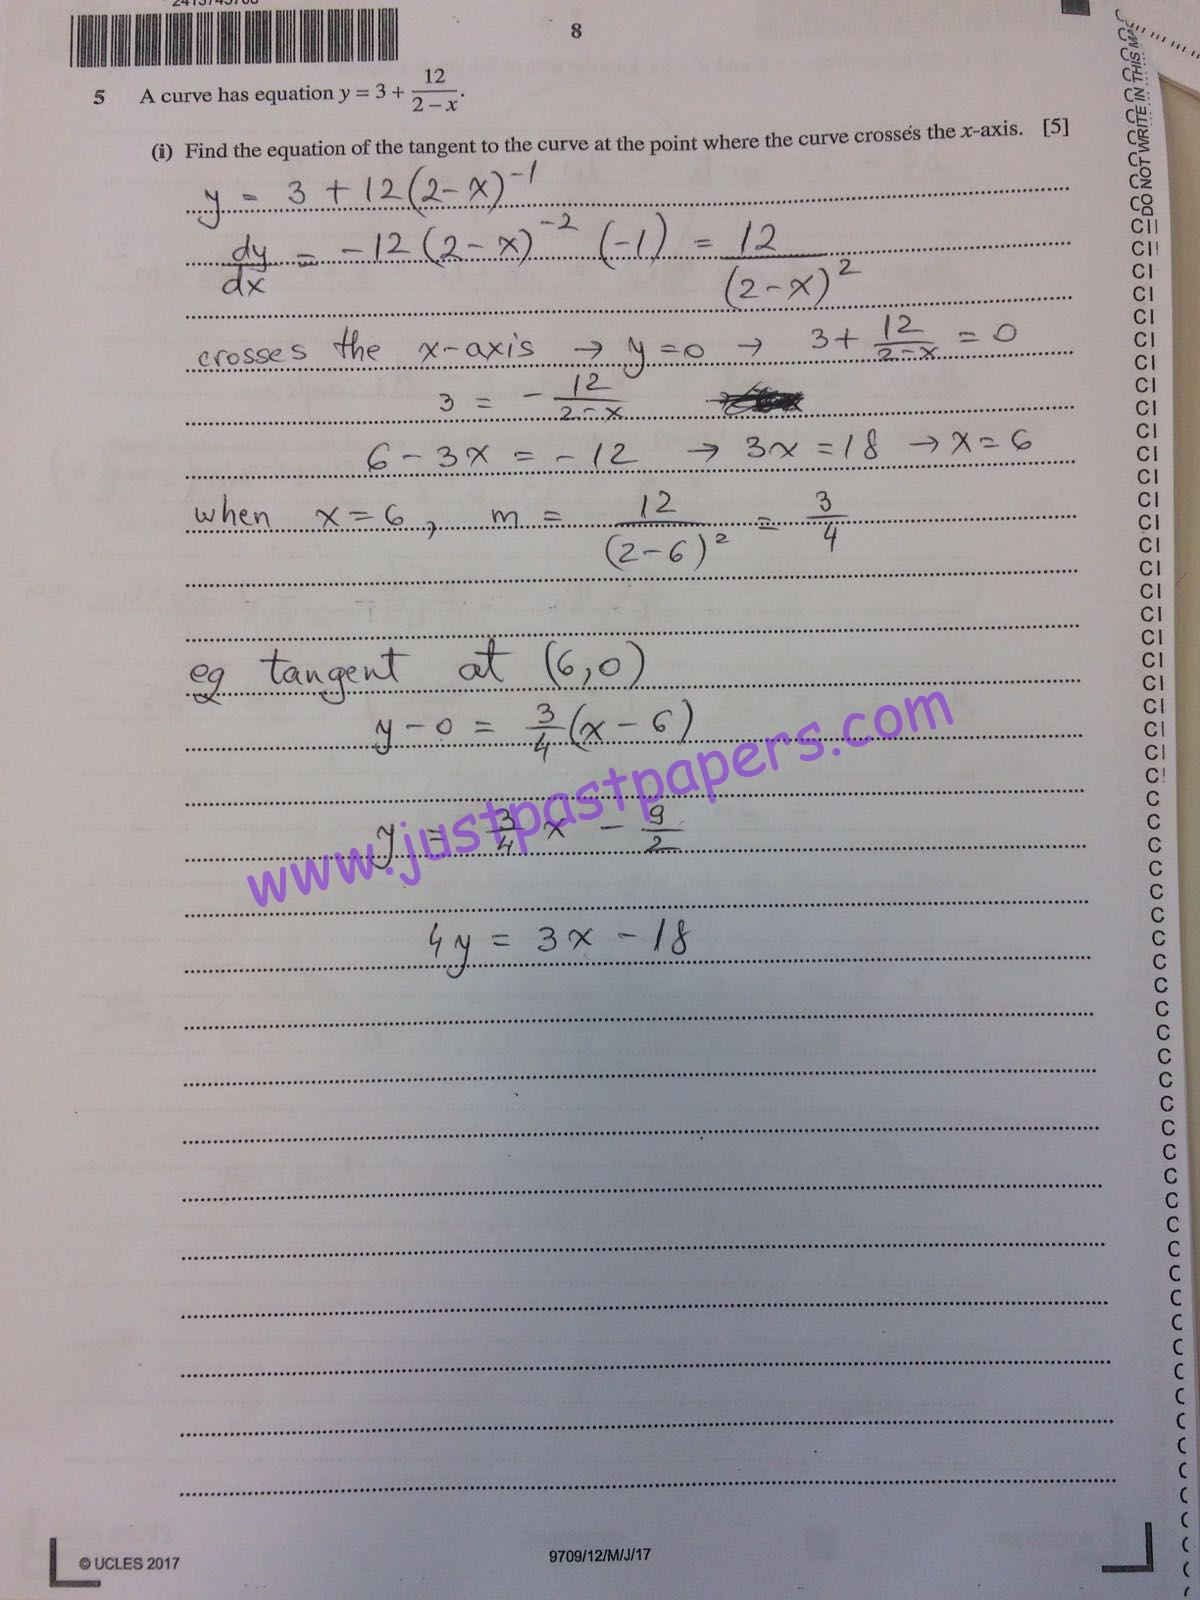 maths paper 1 : march and may june 2017 maths past papers of cie igcse are available 17/1/2017: october/november 2017 igcse maths grade thresholds, syllabus and past exam papers are updated 16/08/2018 : igcse mathematics 2018 past papers of march and may are updated click on the session for which you want the material of mathematics 0580.